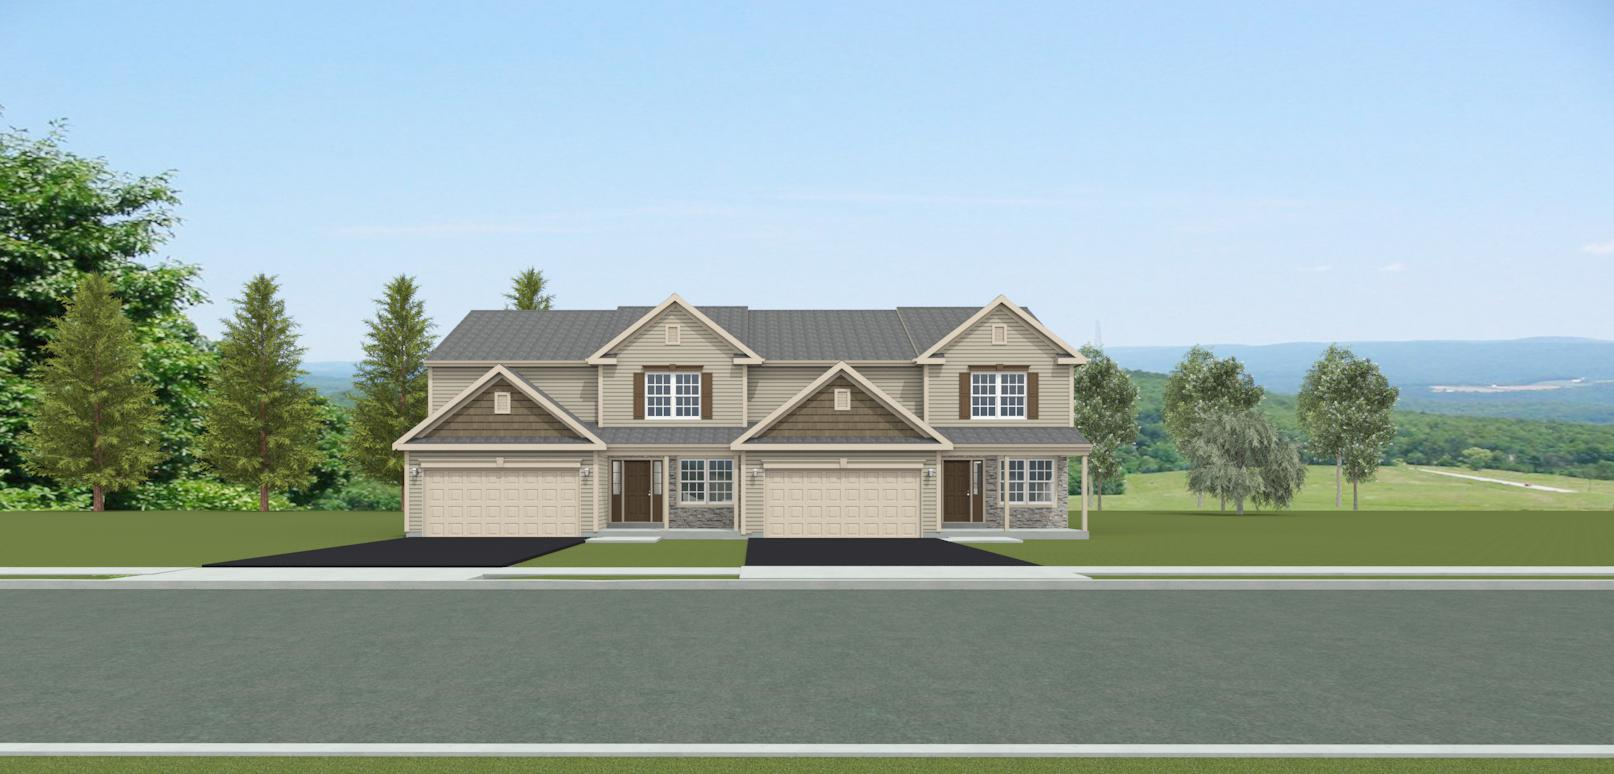 Single Family Home for Sale at Vills At Featherton 26 Canvasback Lane Lot 36 Elizabethtown, Pennsylvania 17022 United States